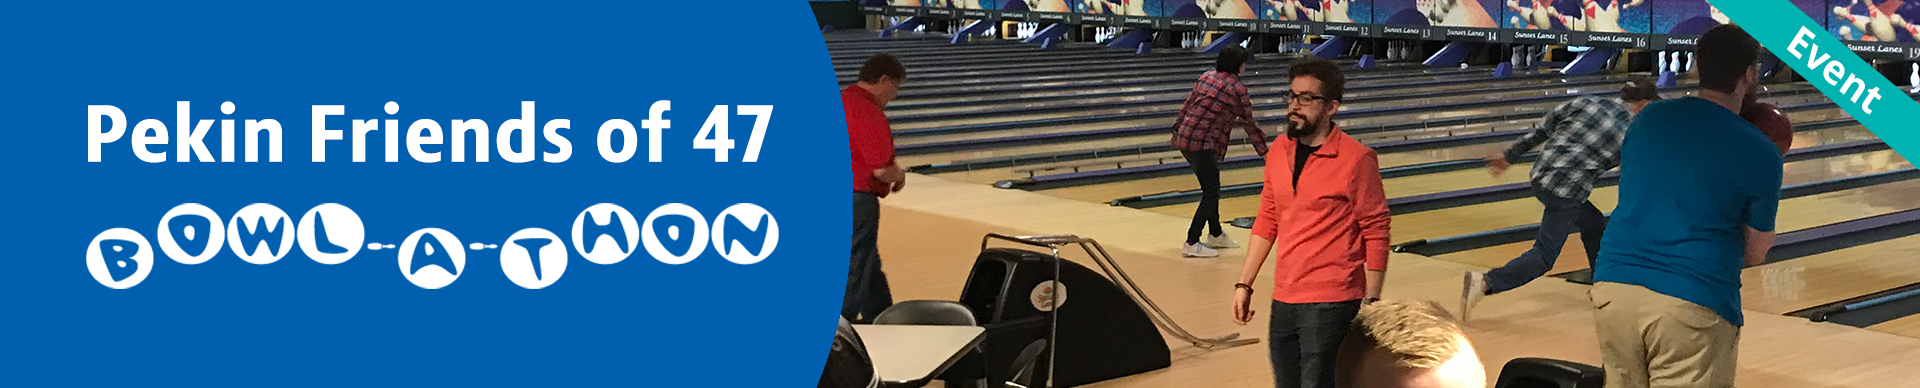 Pekin Friends of 47 Bowl-A-Thon Header